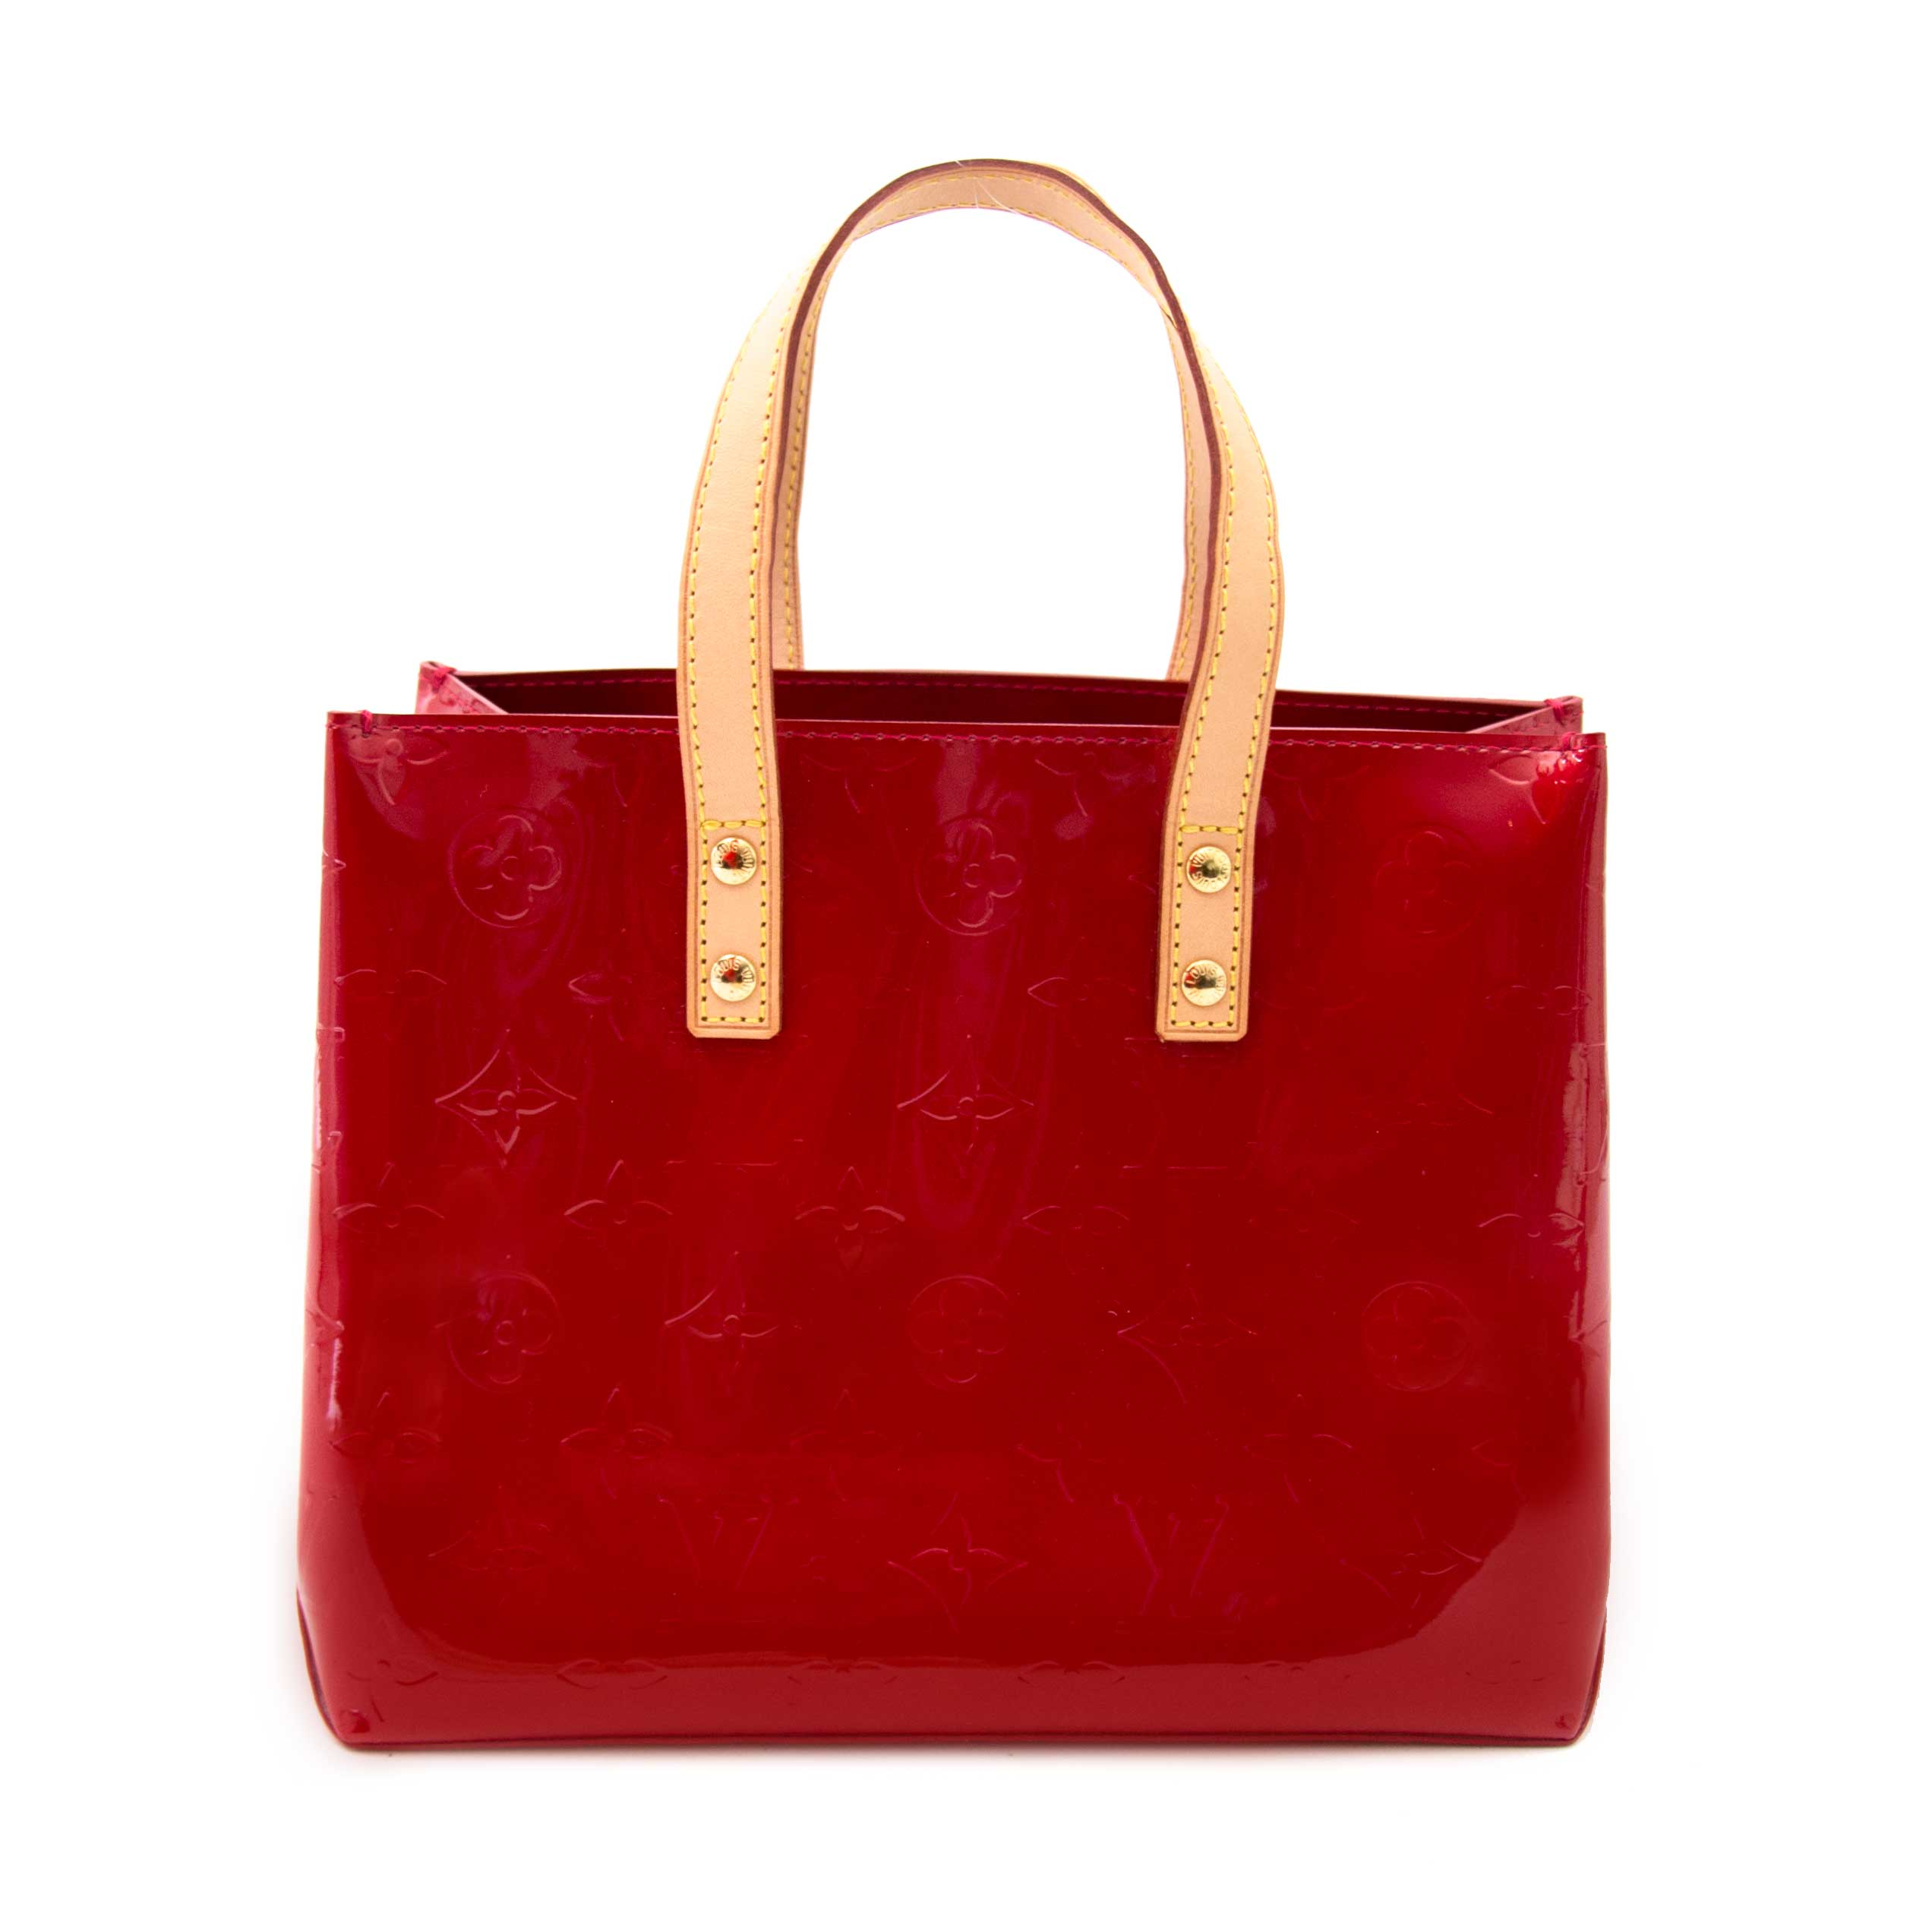 eb0164b192c3 Louis Vuitton Mini Reade Red Vernis Leather Tote Bag at 1stdibs